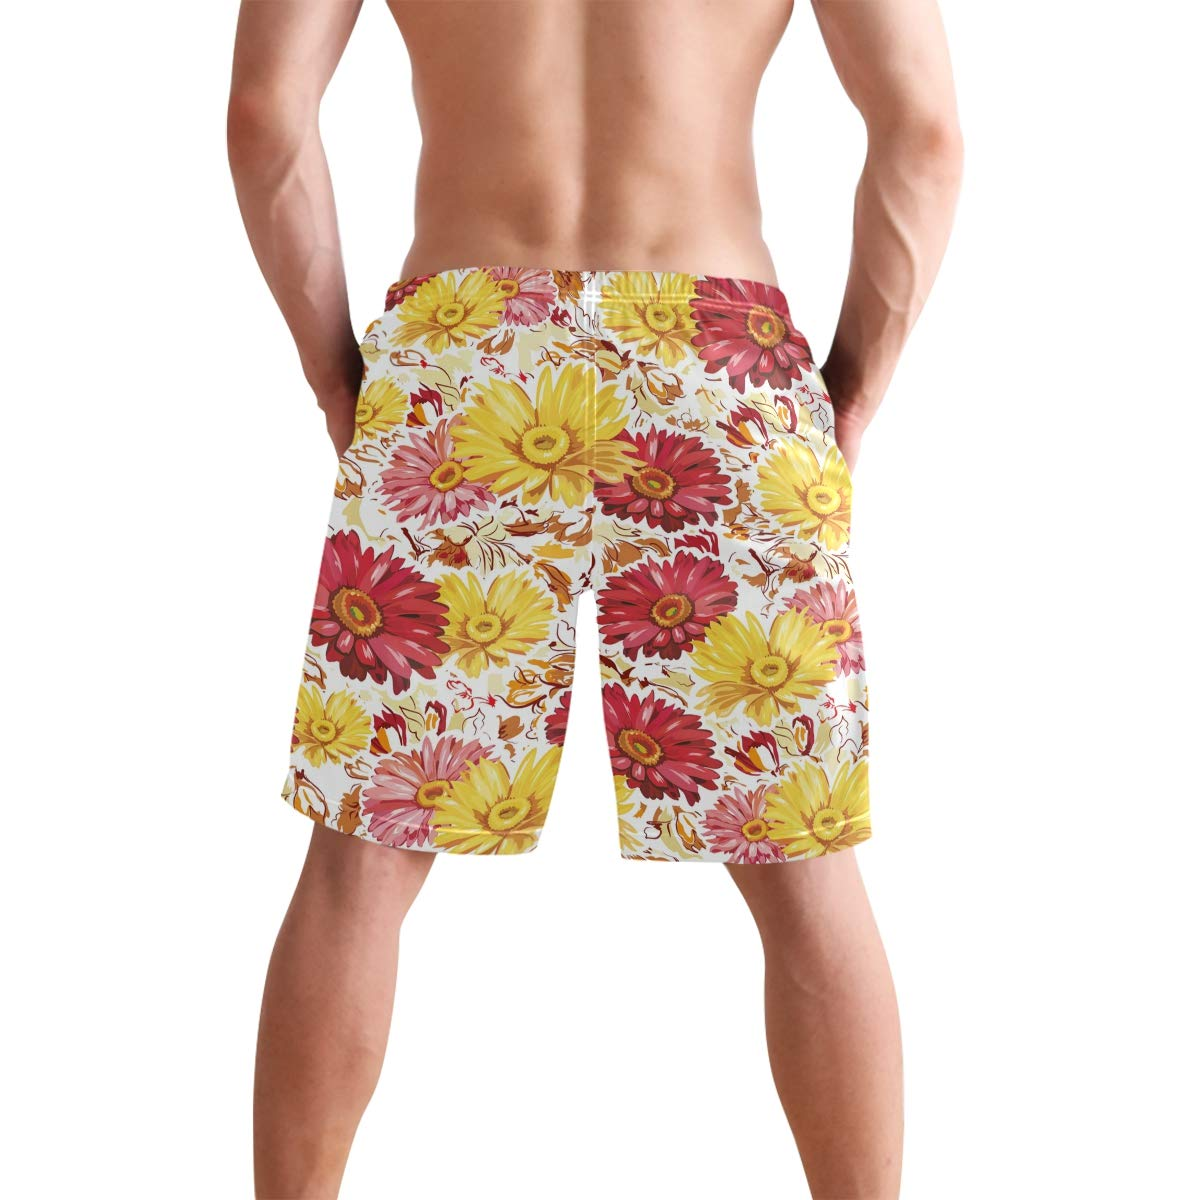 DEYYA Mens Colorful Daisy Flower Swim Trunks Beachwear Summer Holiday Beach Shorts Quick Dry